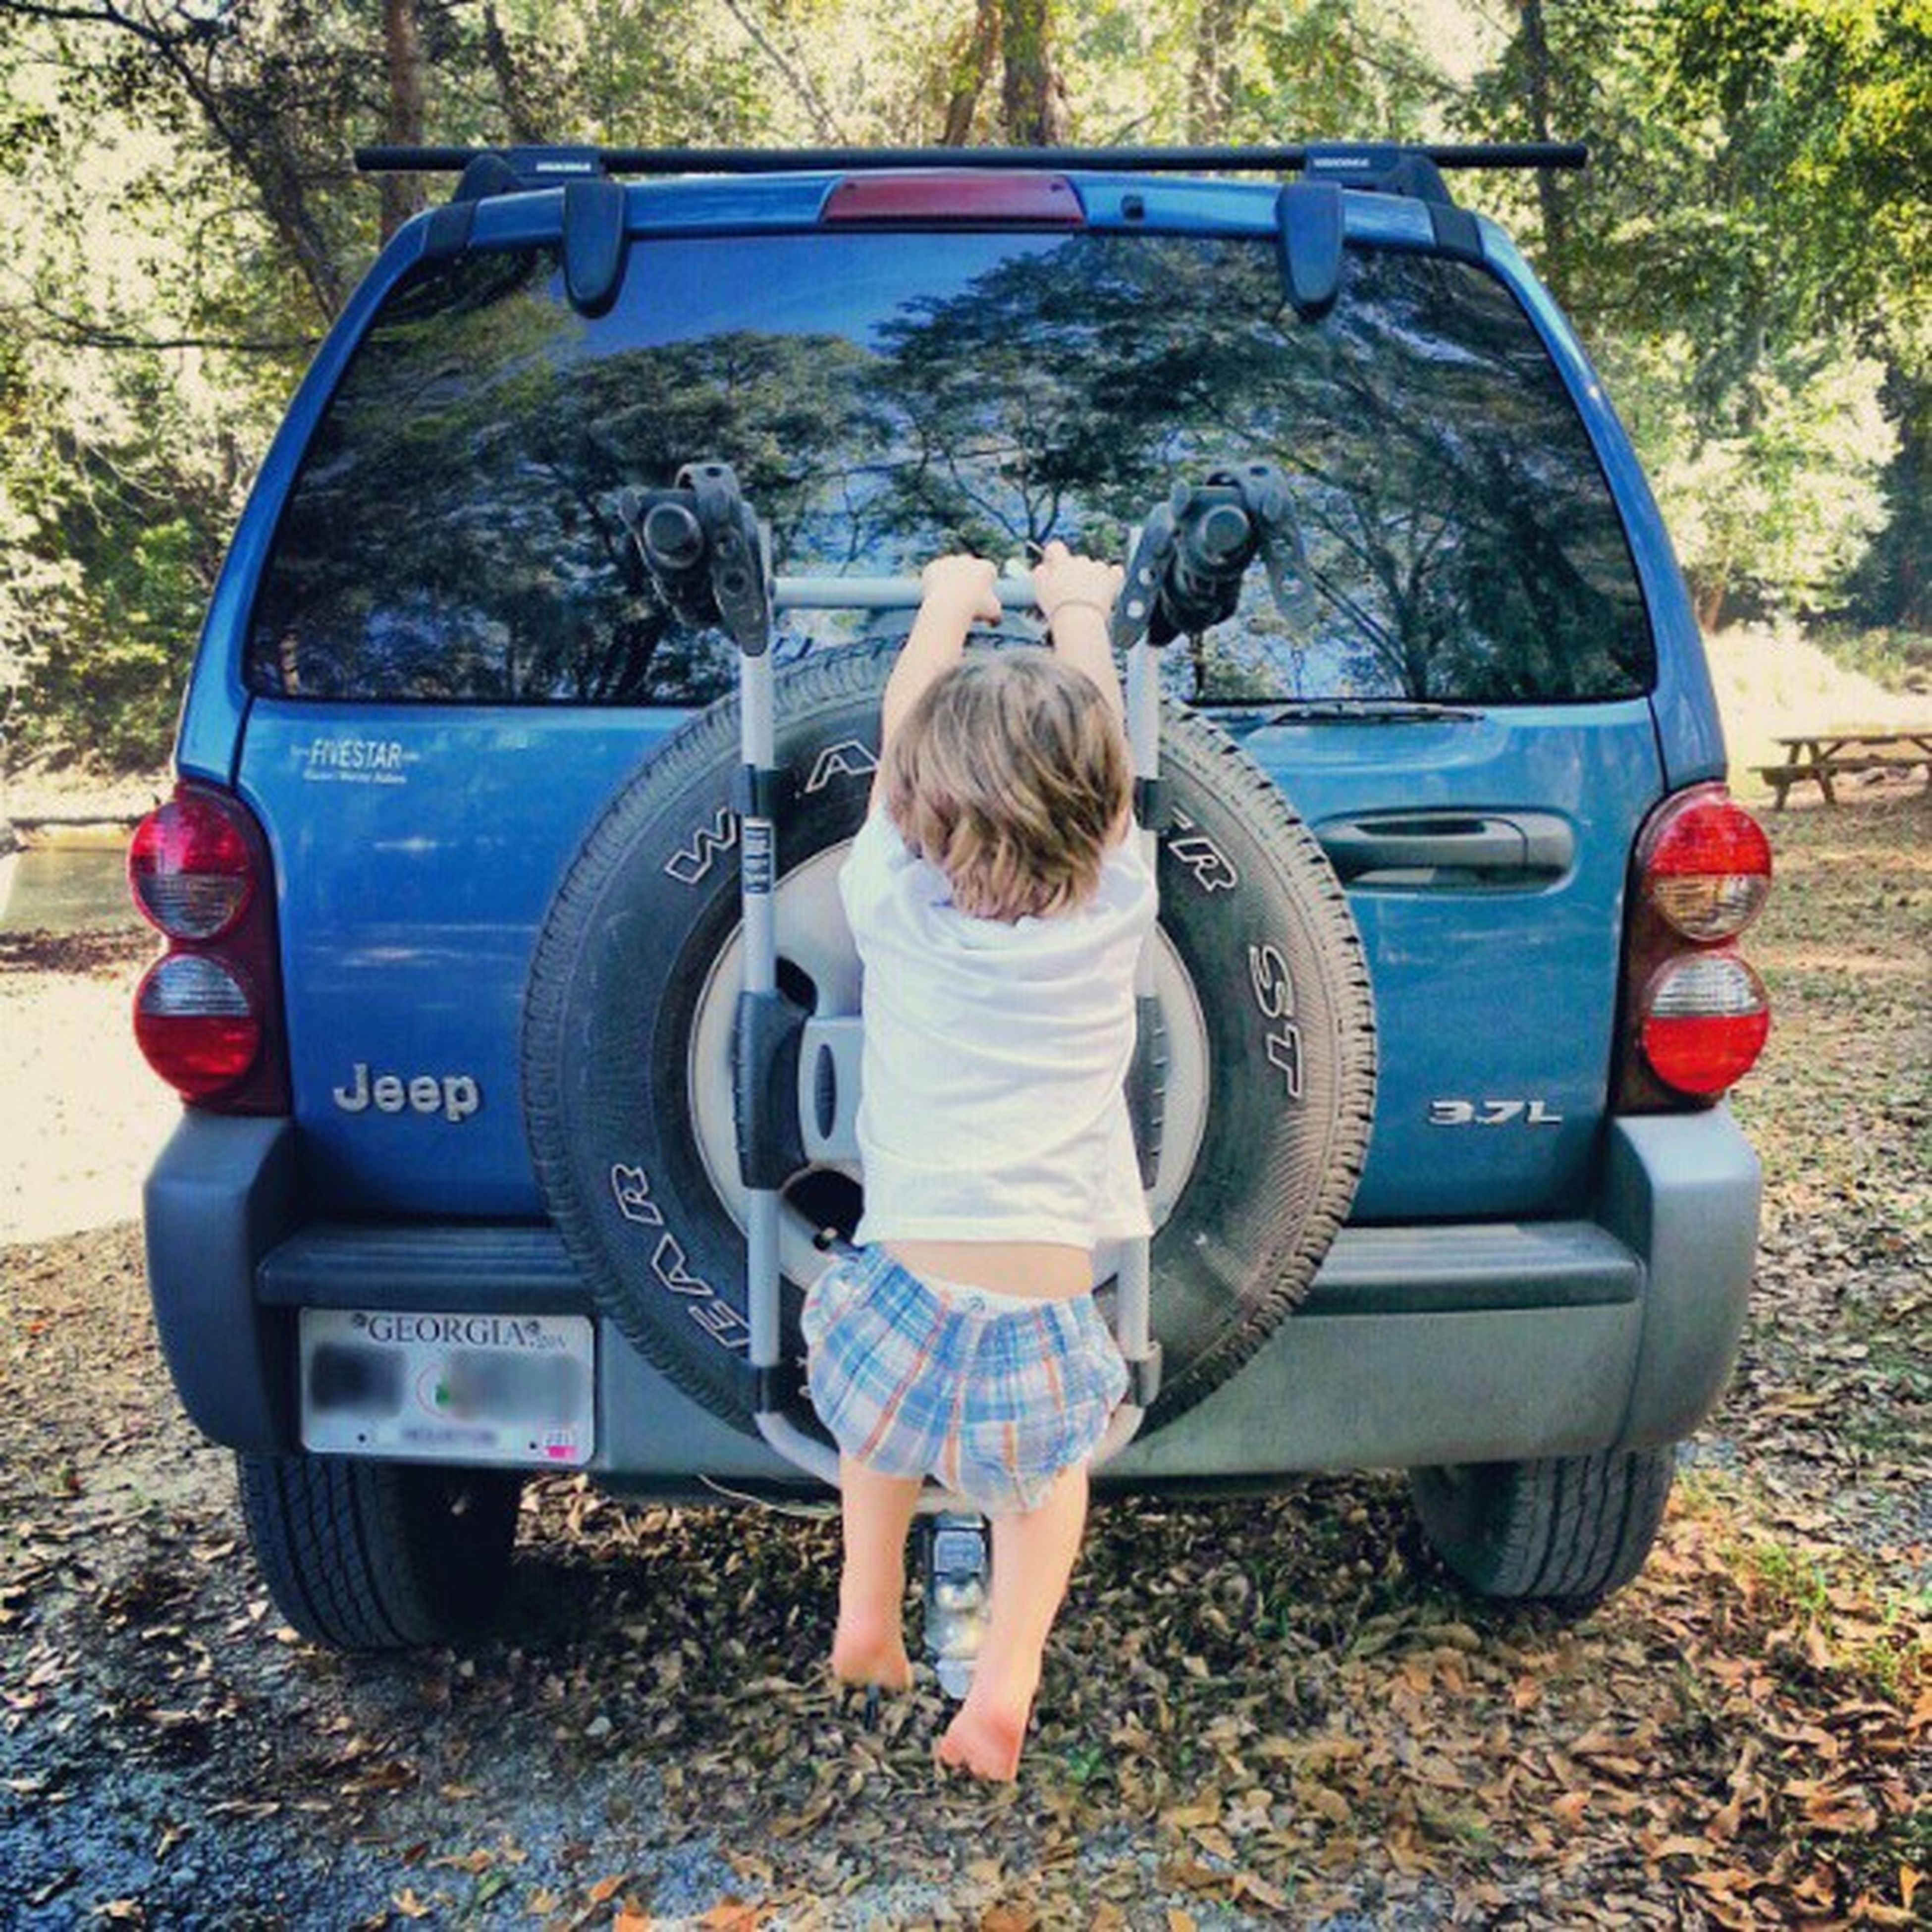 childhood, full length, elementary age, sitting, casual clothing, land vehicle, lifestyles, high angle view, car, transportation, day, leisure activity, rear view, toy, girls, innocence, cute, boys